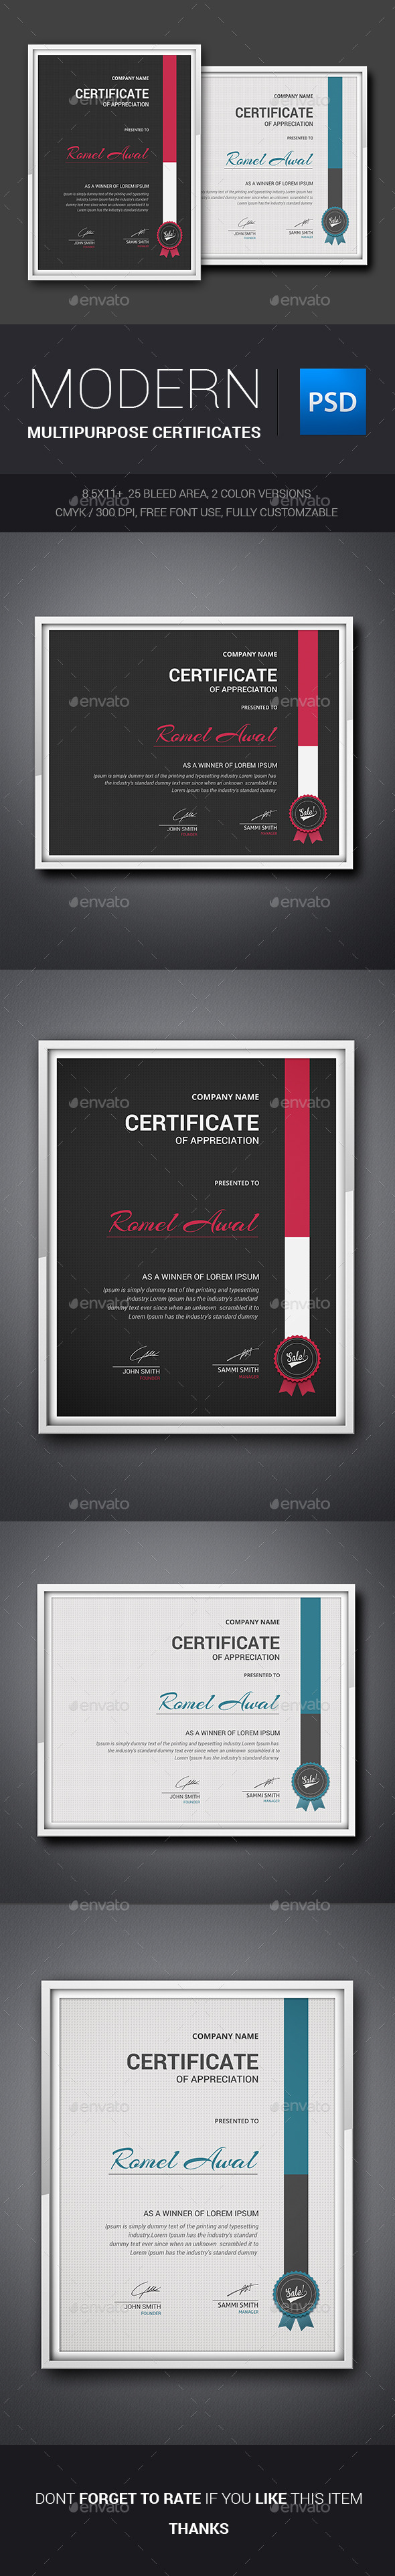 GraphicRiver Modern Multipurpose Certificates 11380454